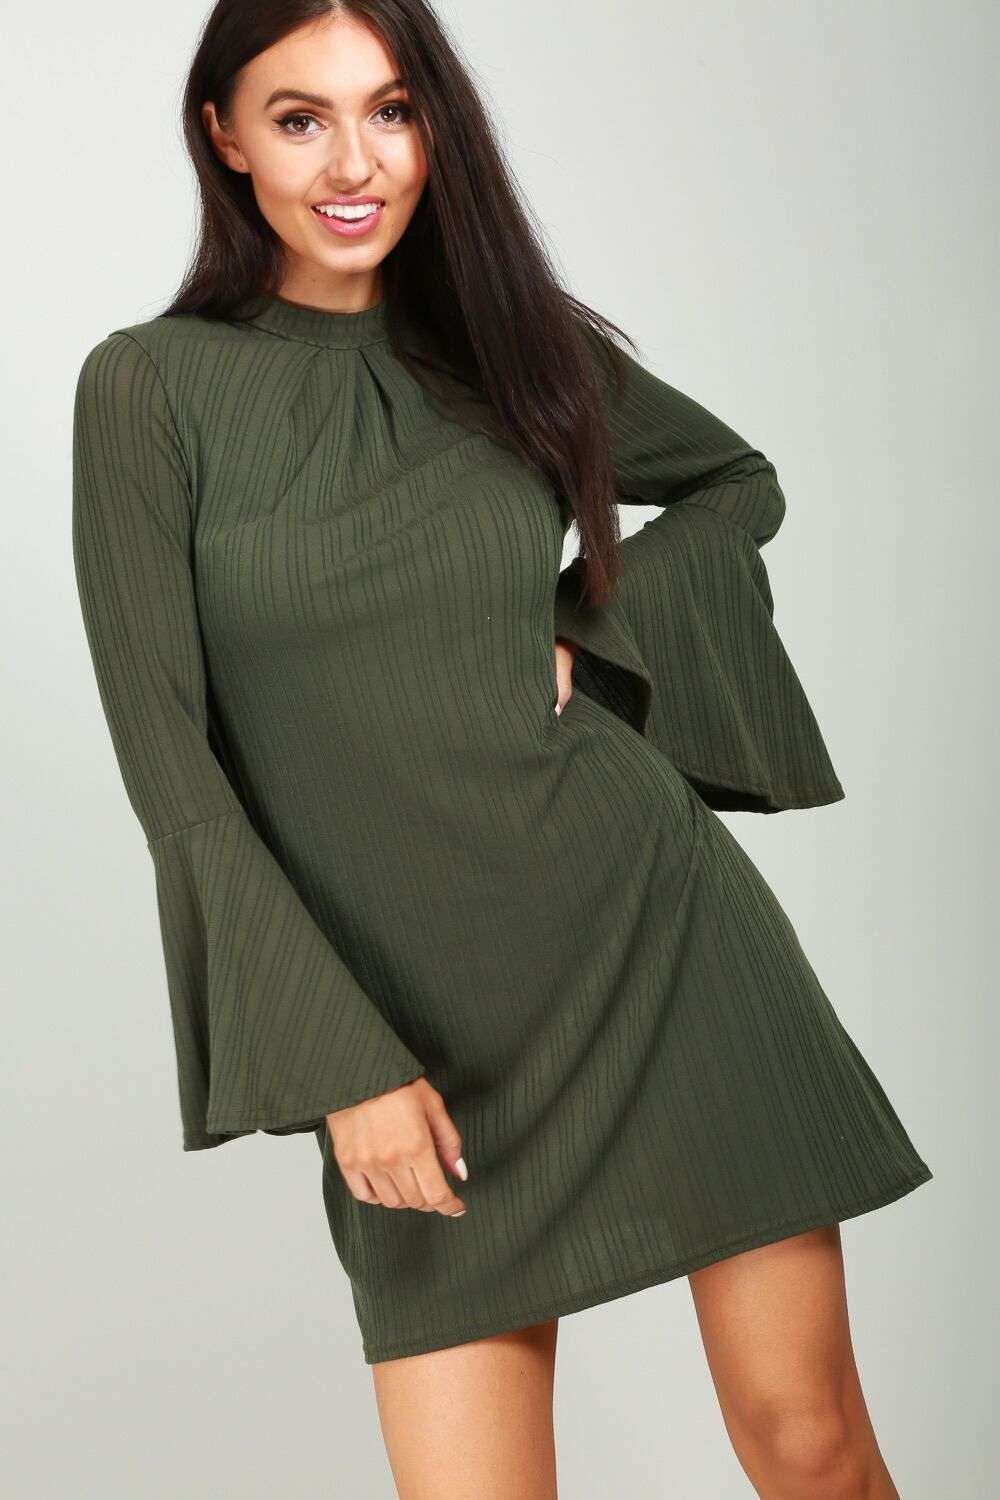 Harriet Flare Sleeve Dress - bejealous-com